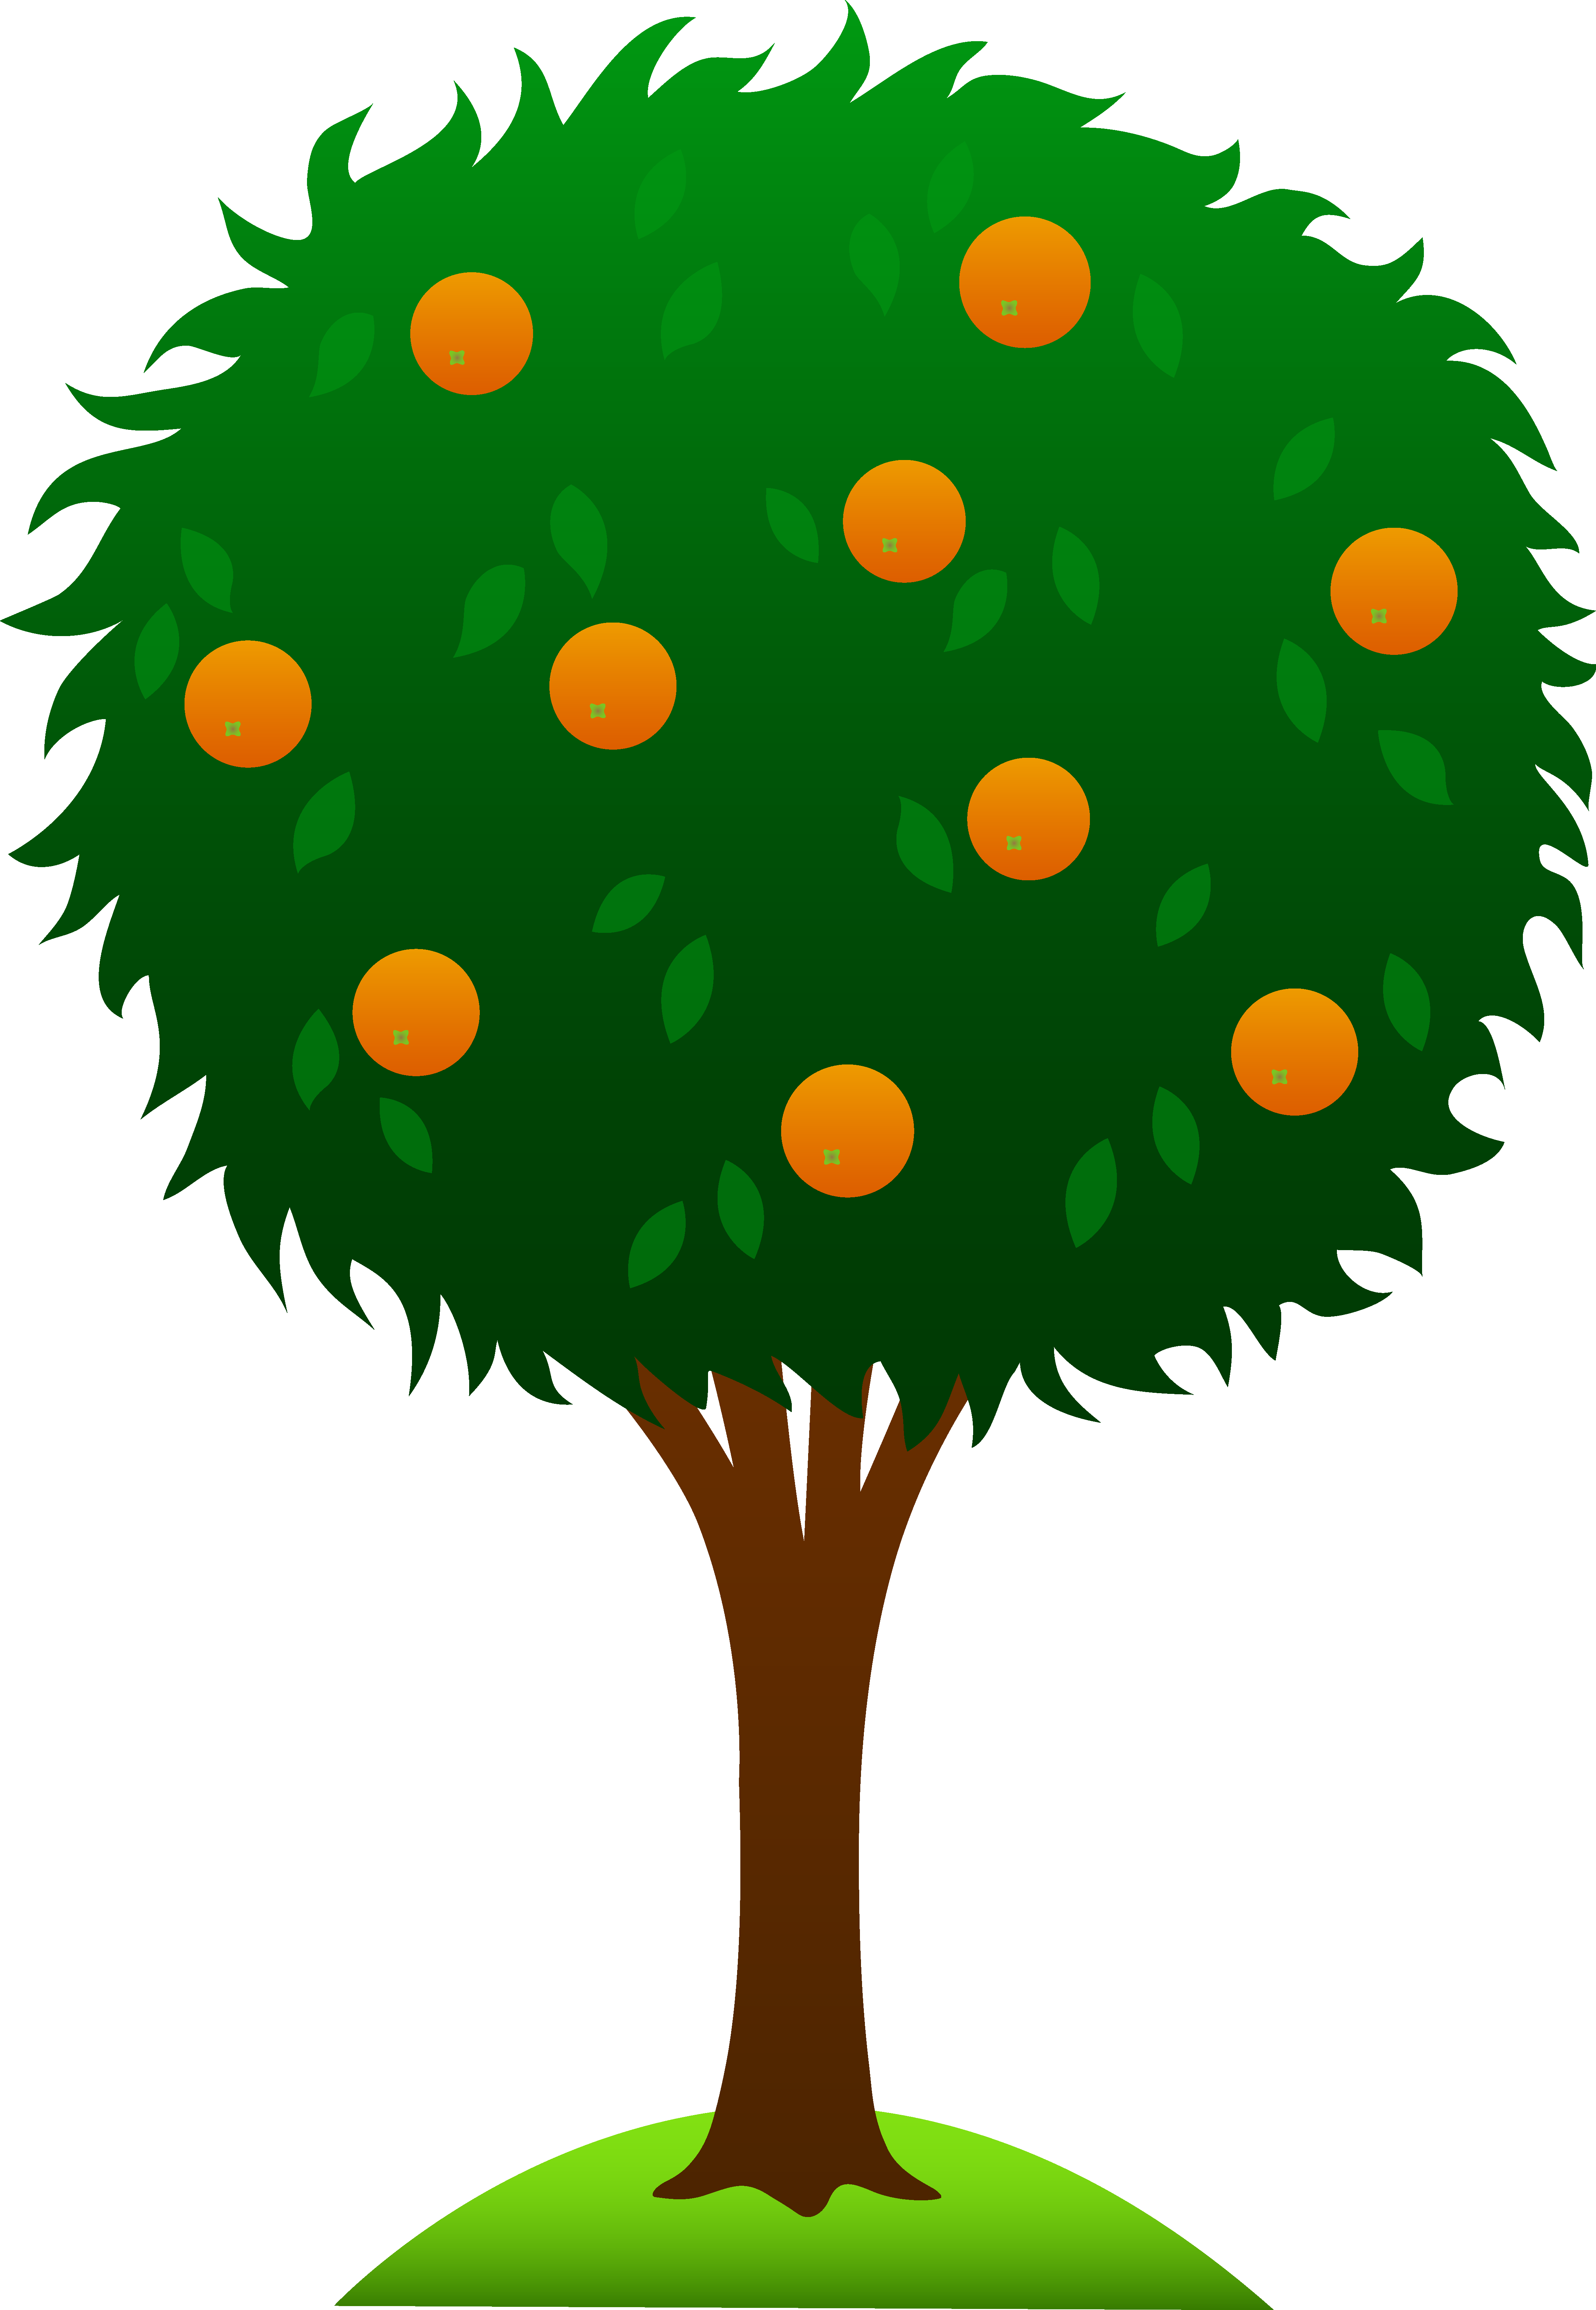 Peach clipart peach tree, Peach peach tree Transparent FREE ... jpg free download